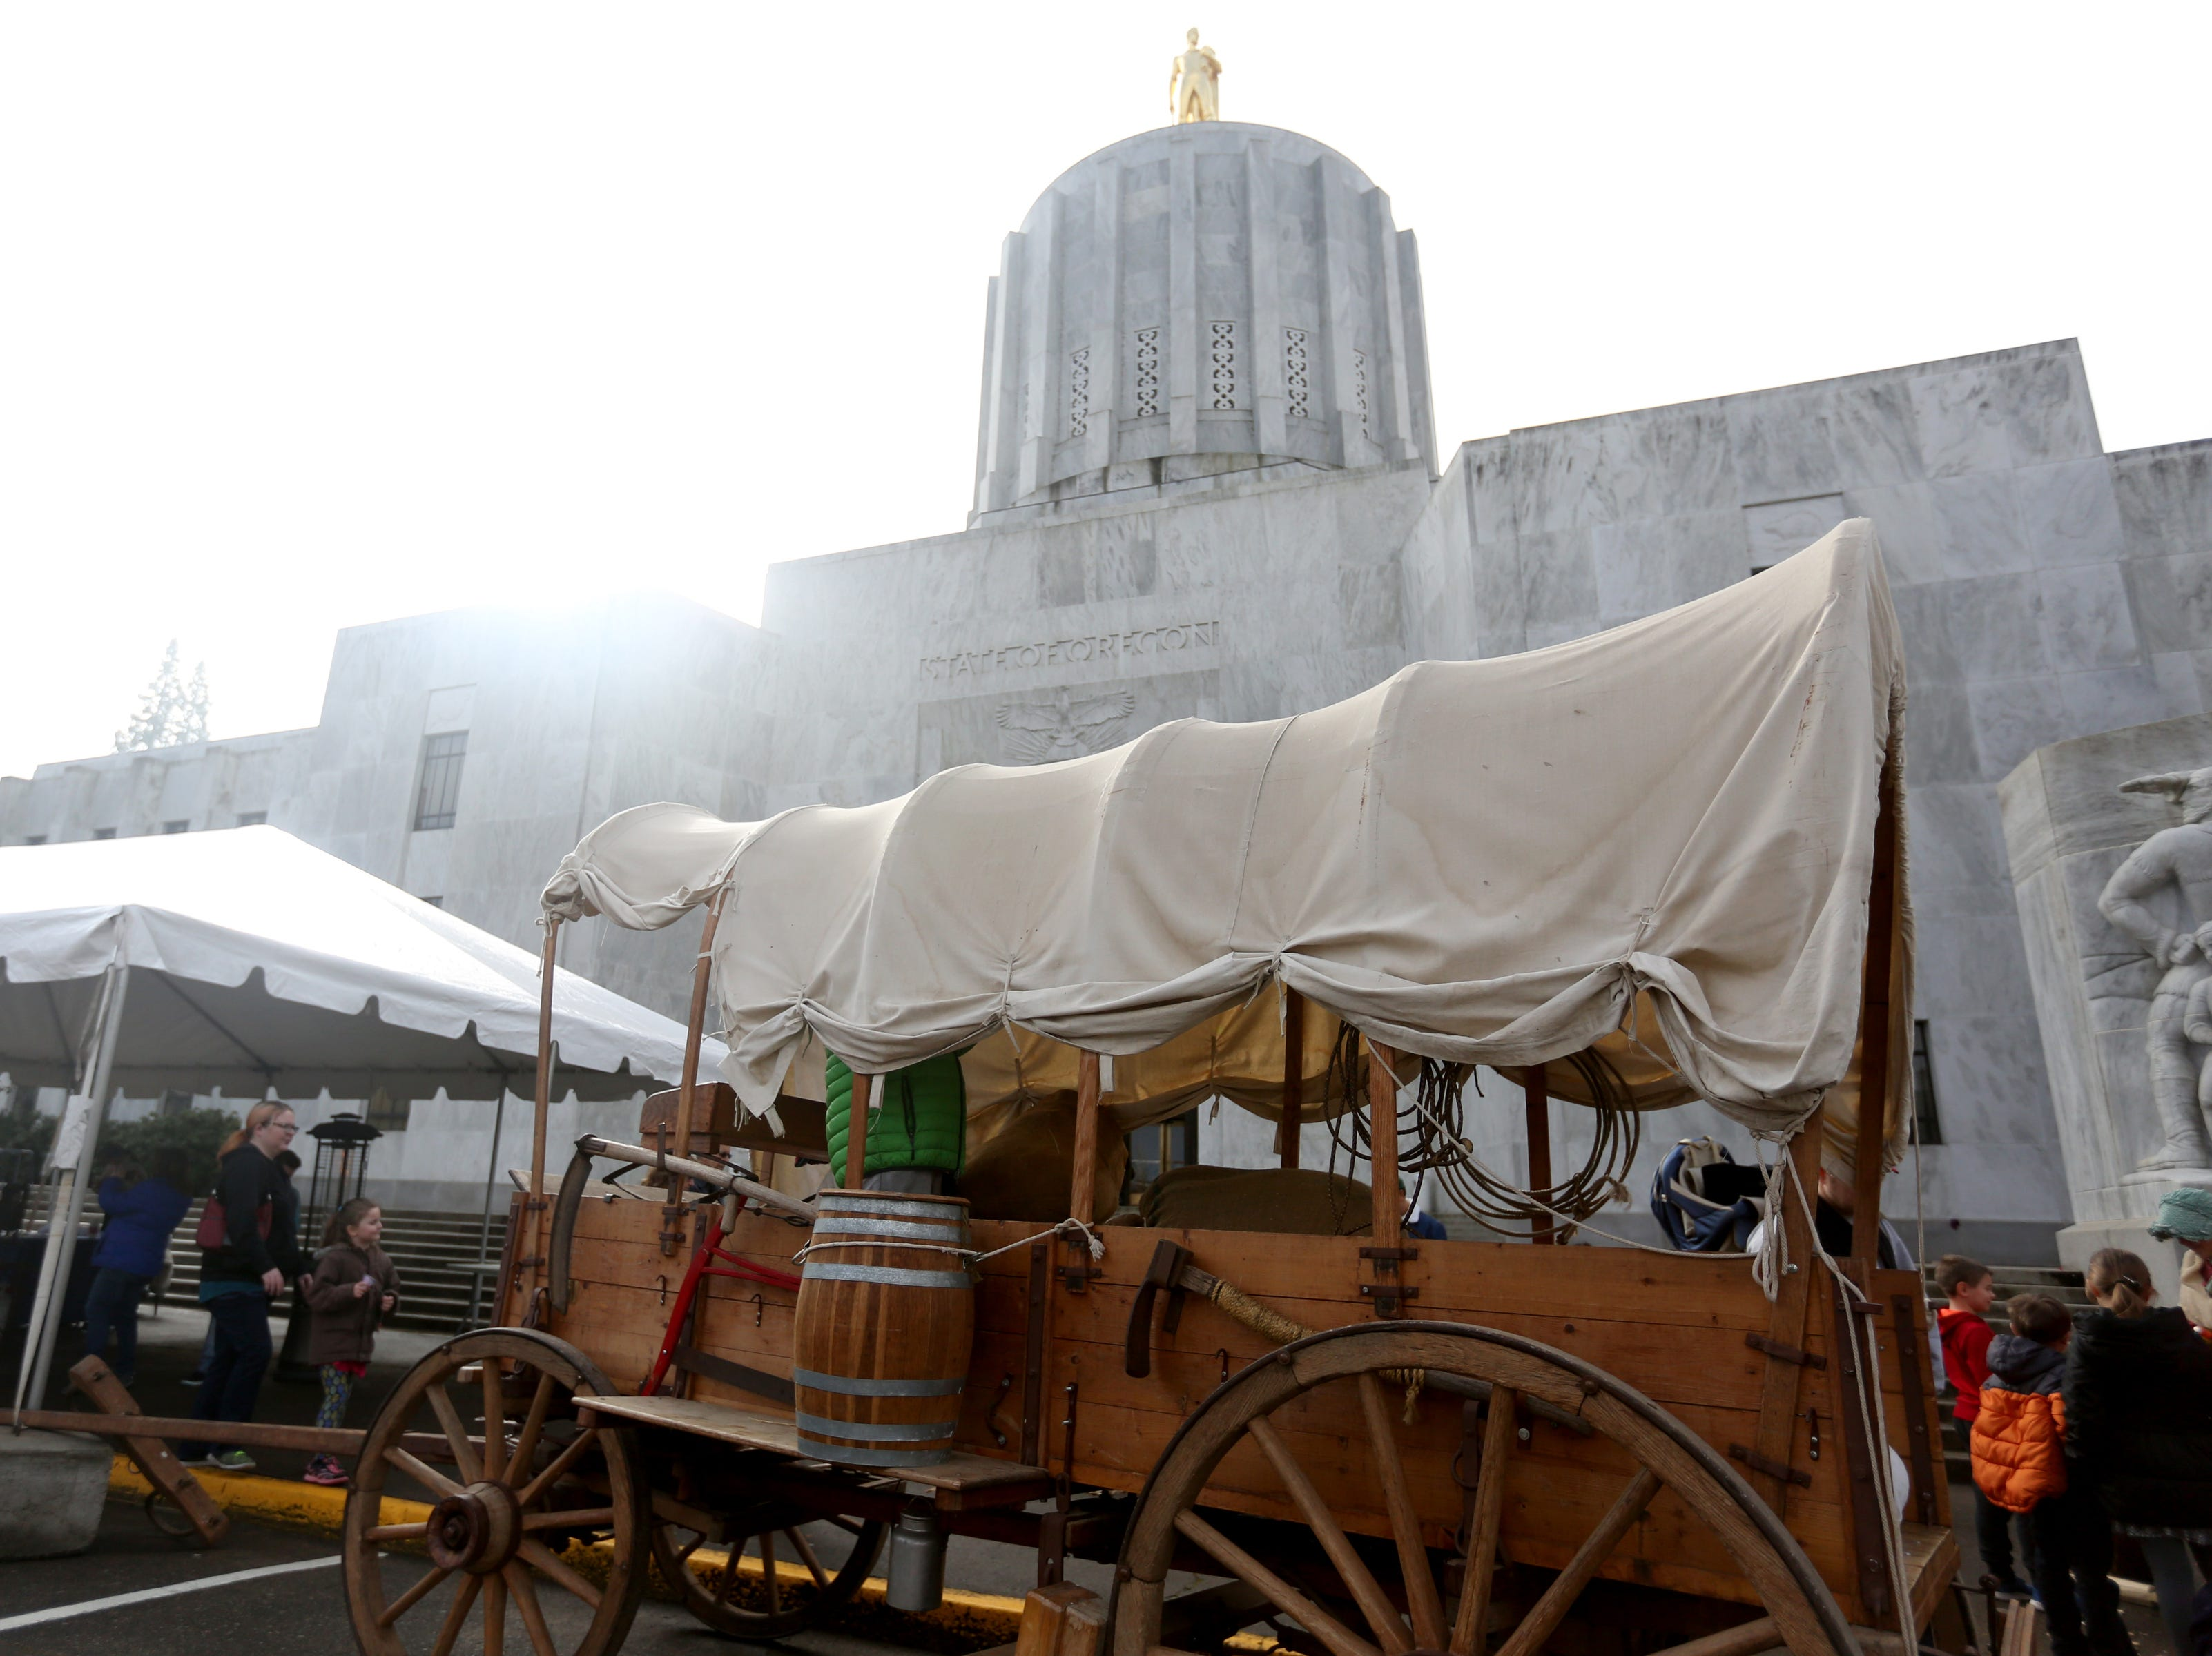 A covered wagon is parked outside during a celebration of Oregon's 158th birthday at the Oregon State Capitol in Salem on Feb. 11, 2017.